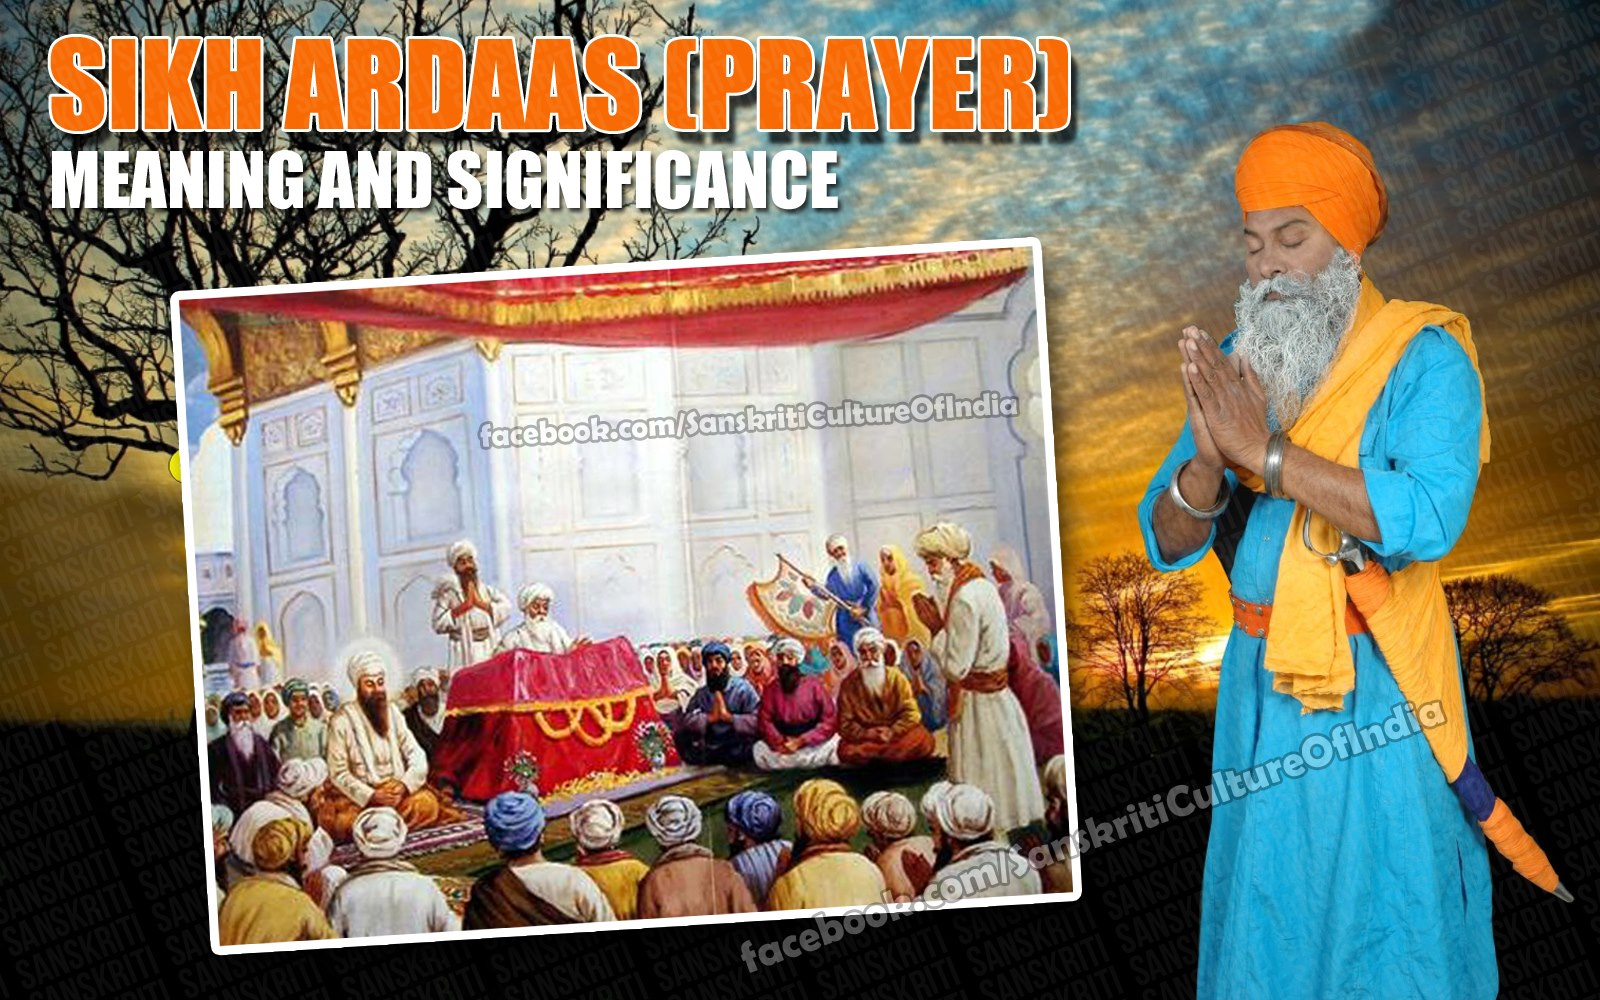 Ardas - The Sikh Prayer explained